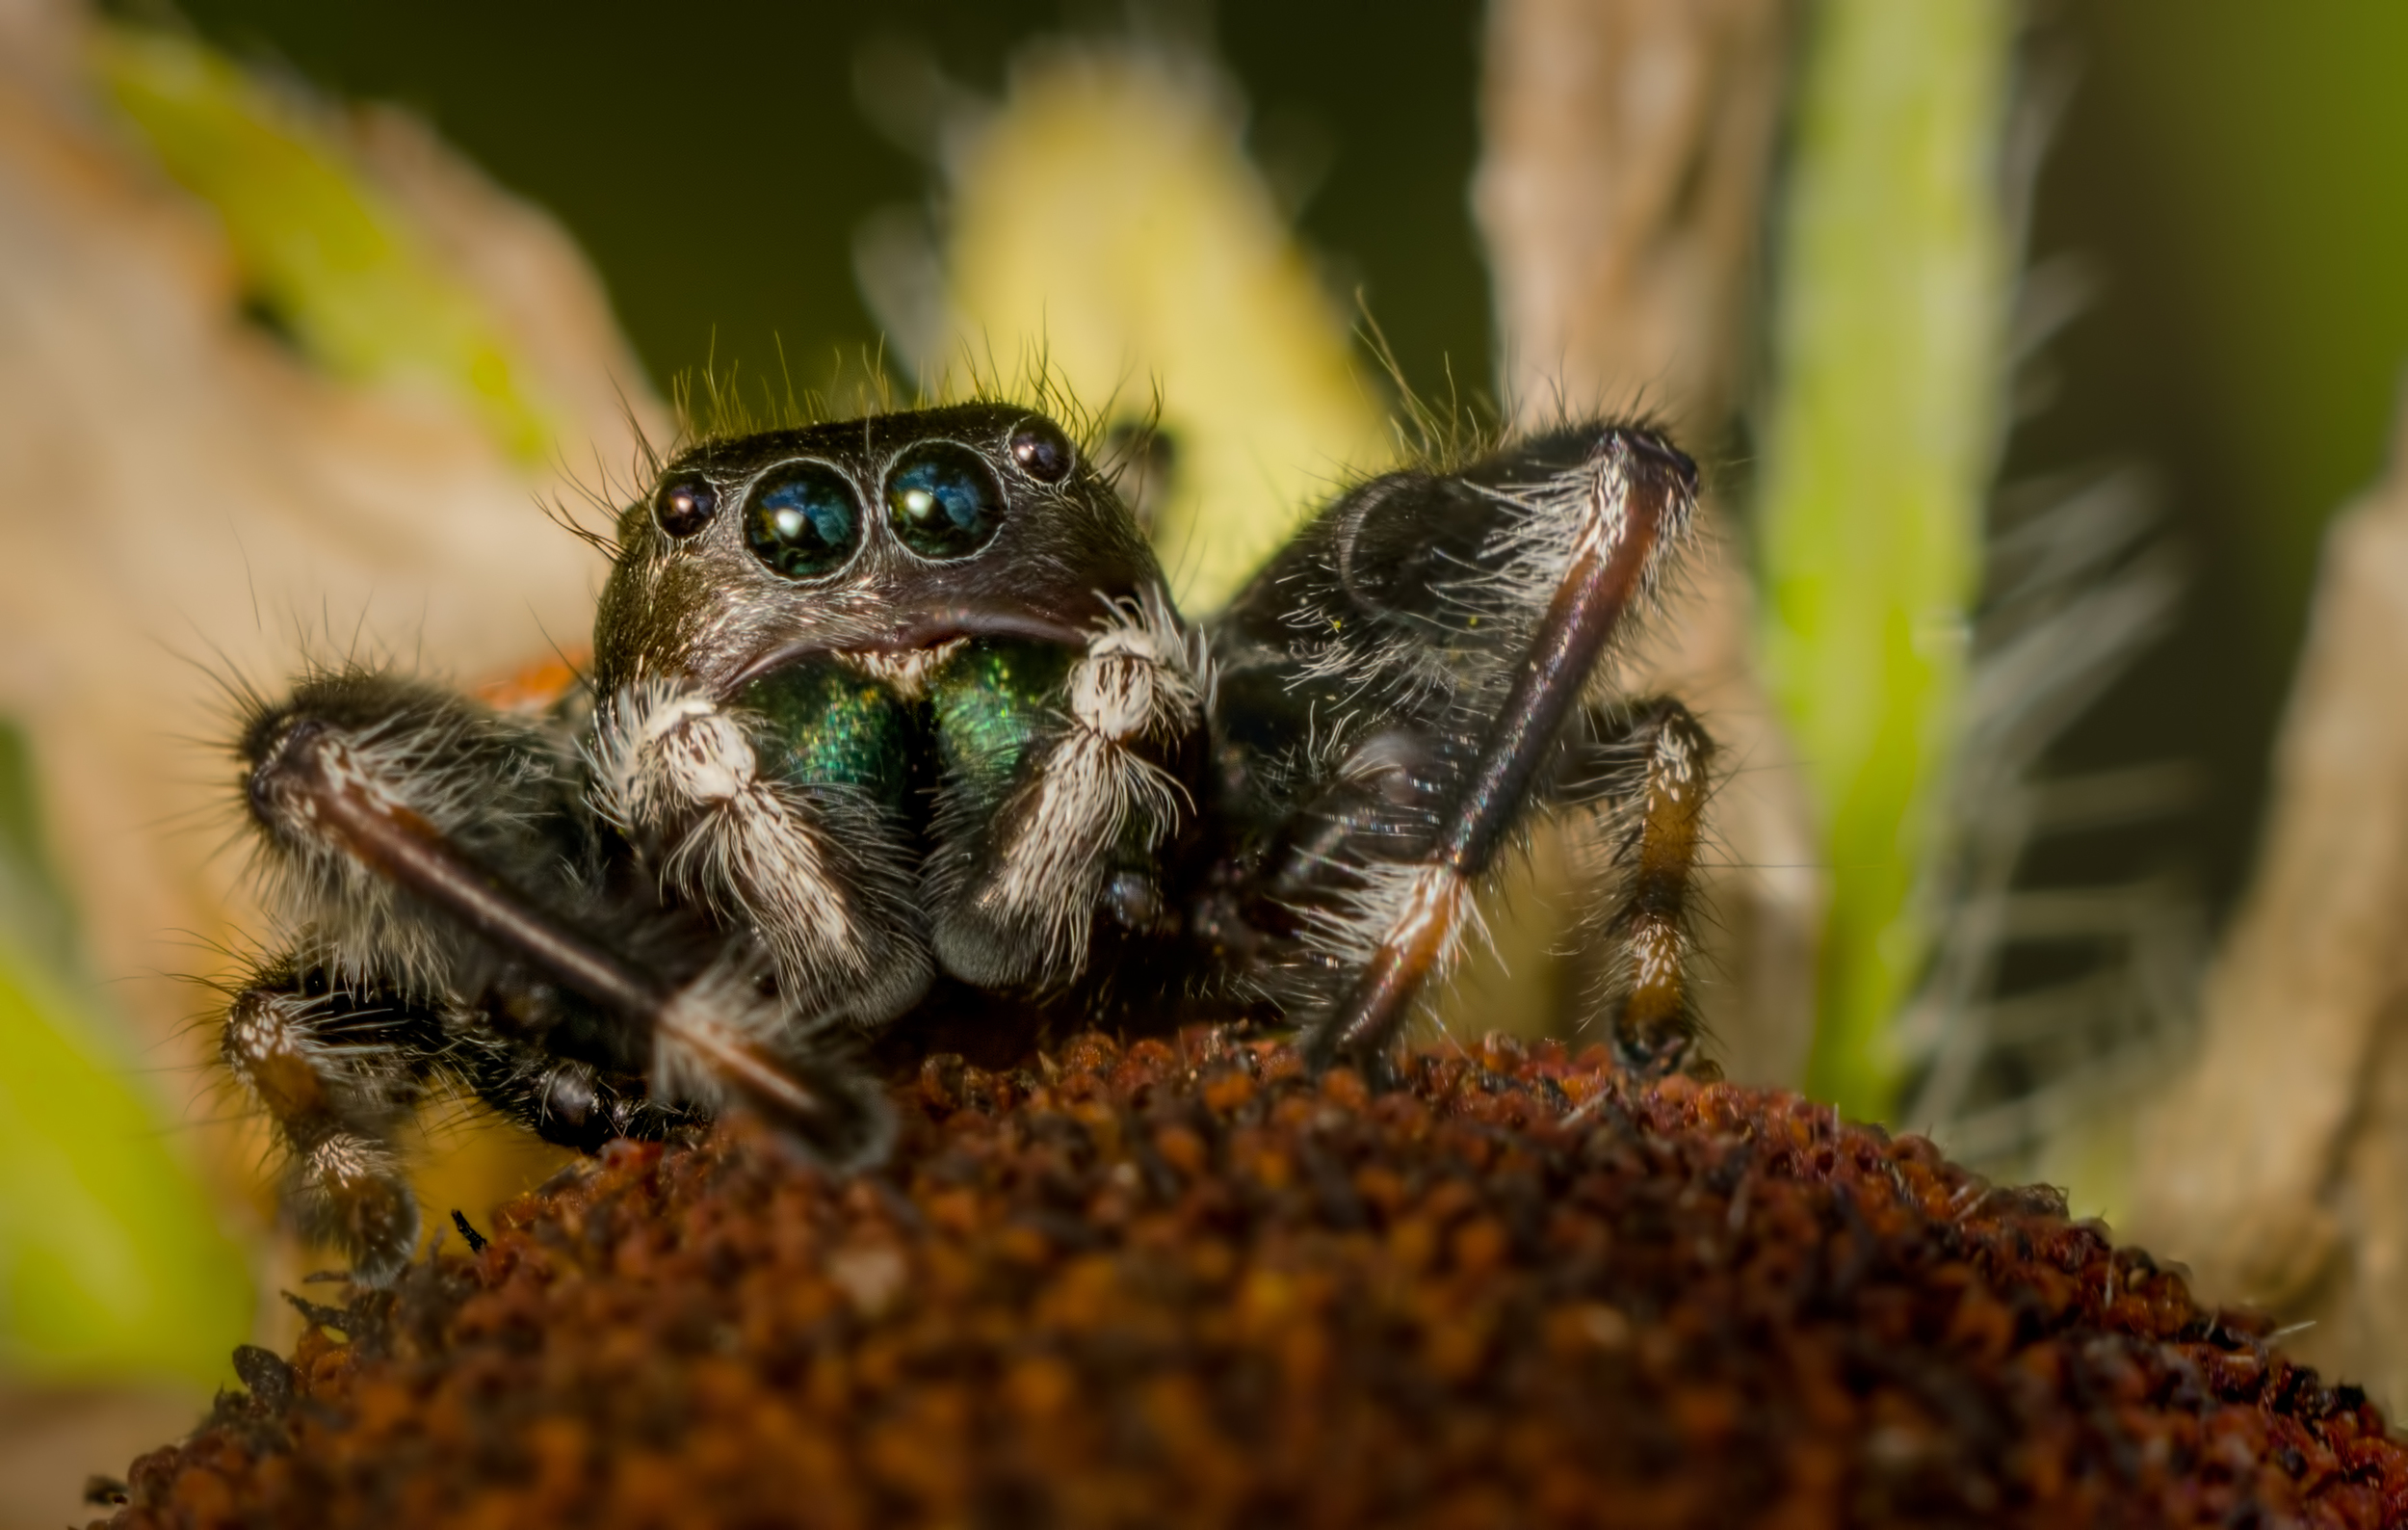 Jumping Spider  Nikon D7000 ISO 400 1/250 sec.Nikkor 105mm f/4 Micro AI manual focus lens + 27mm + 20mm + 14mm + 12mm extension tubes, off-body flash with DIY snoot/diffuser